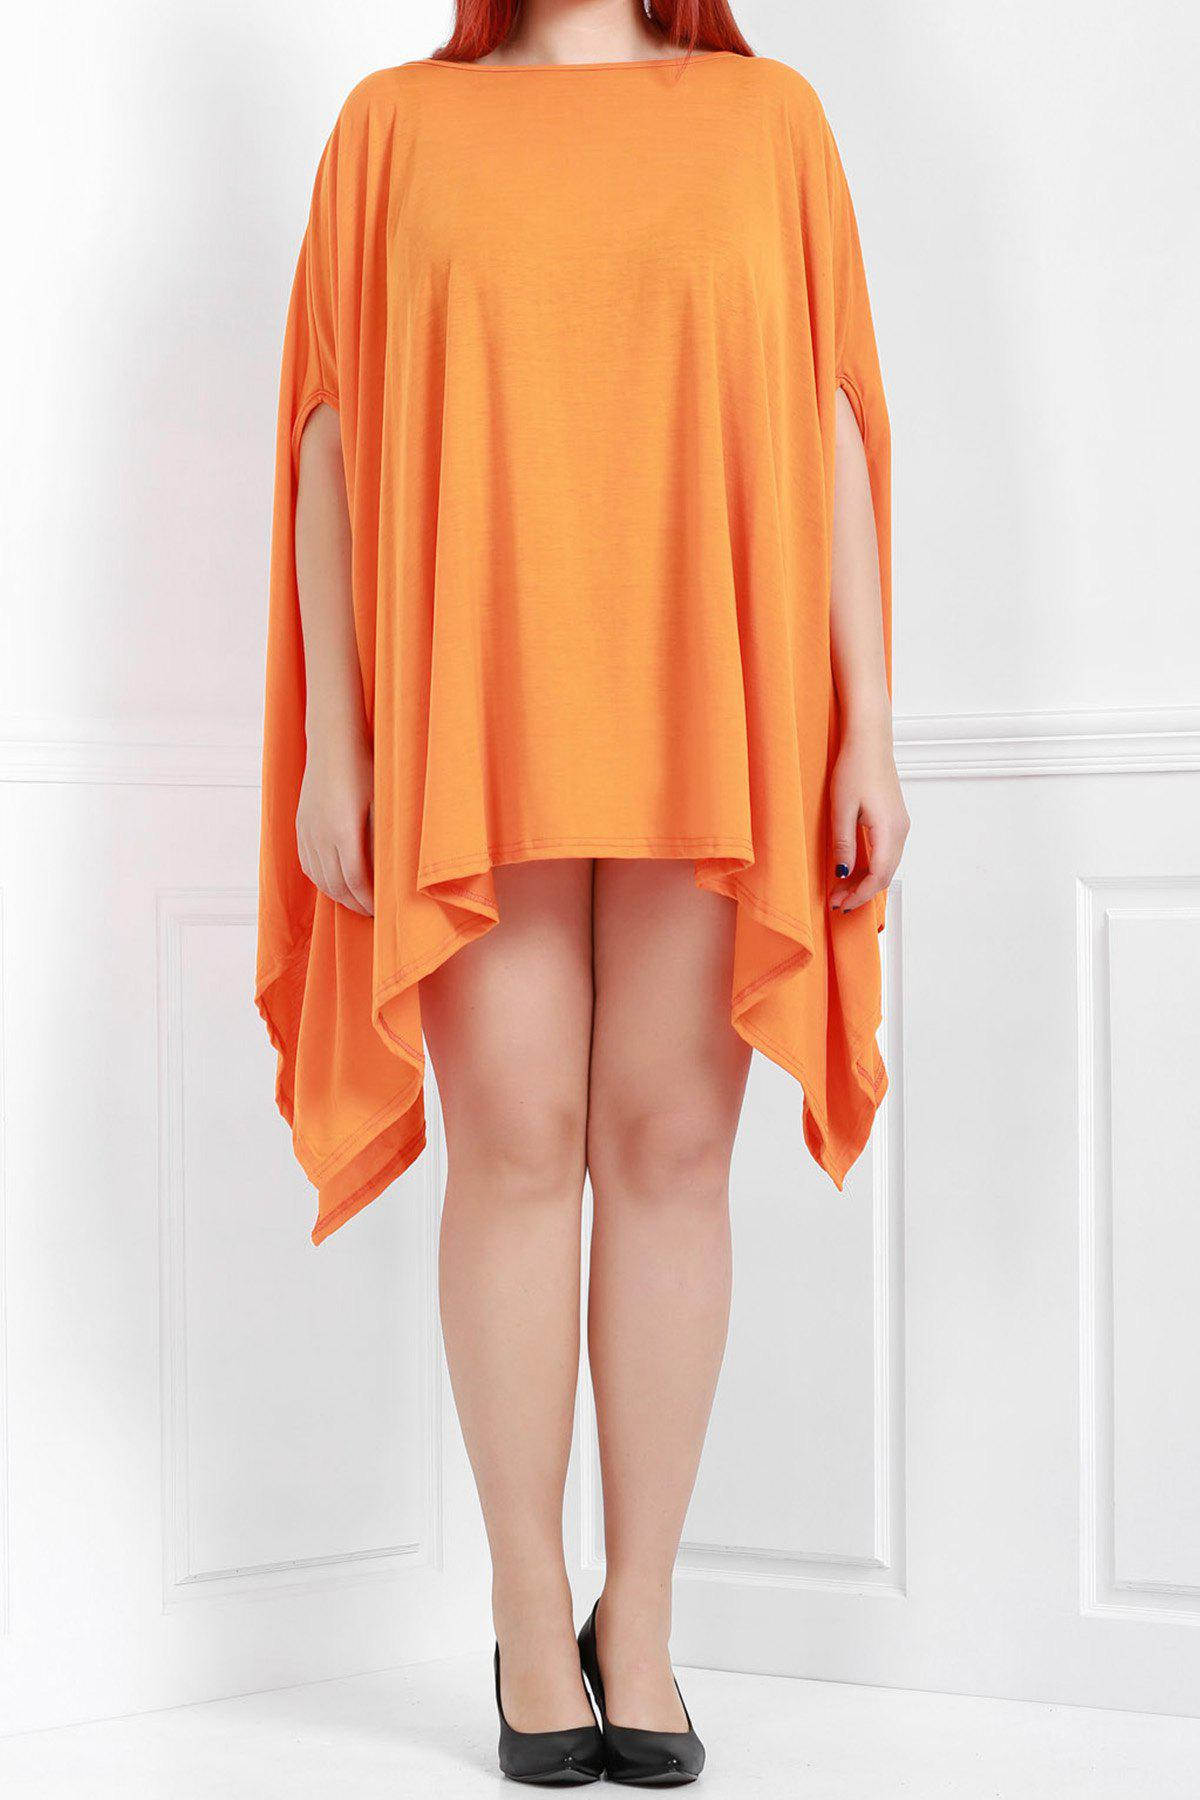 Handkerchief Plus Size Caped Top with Batwing Sleeve - ORANGE 2XL